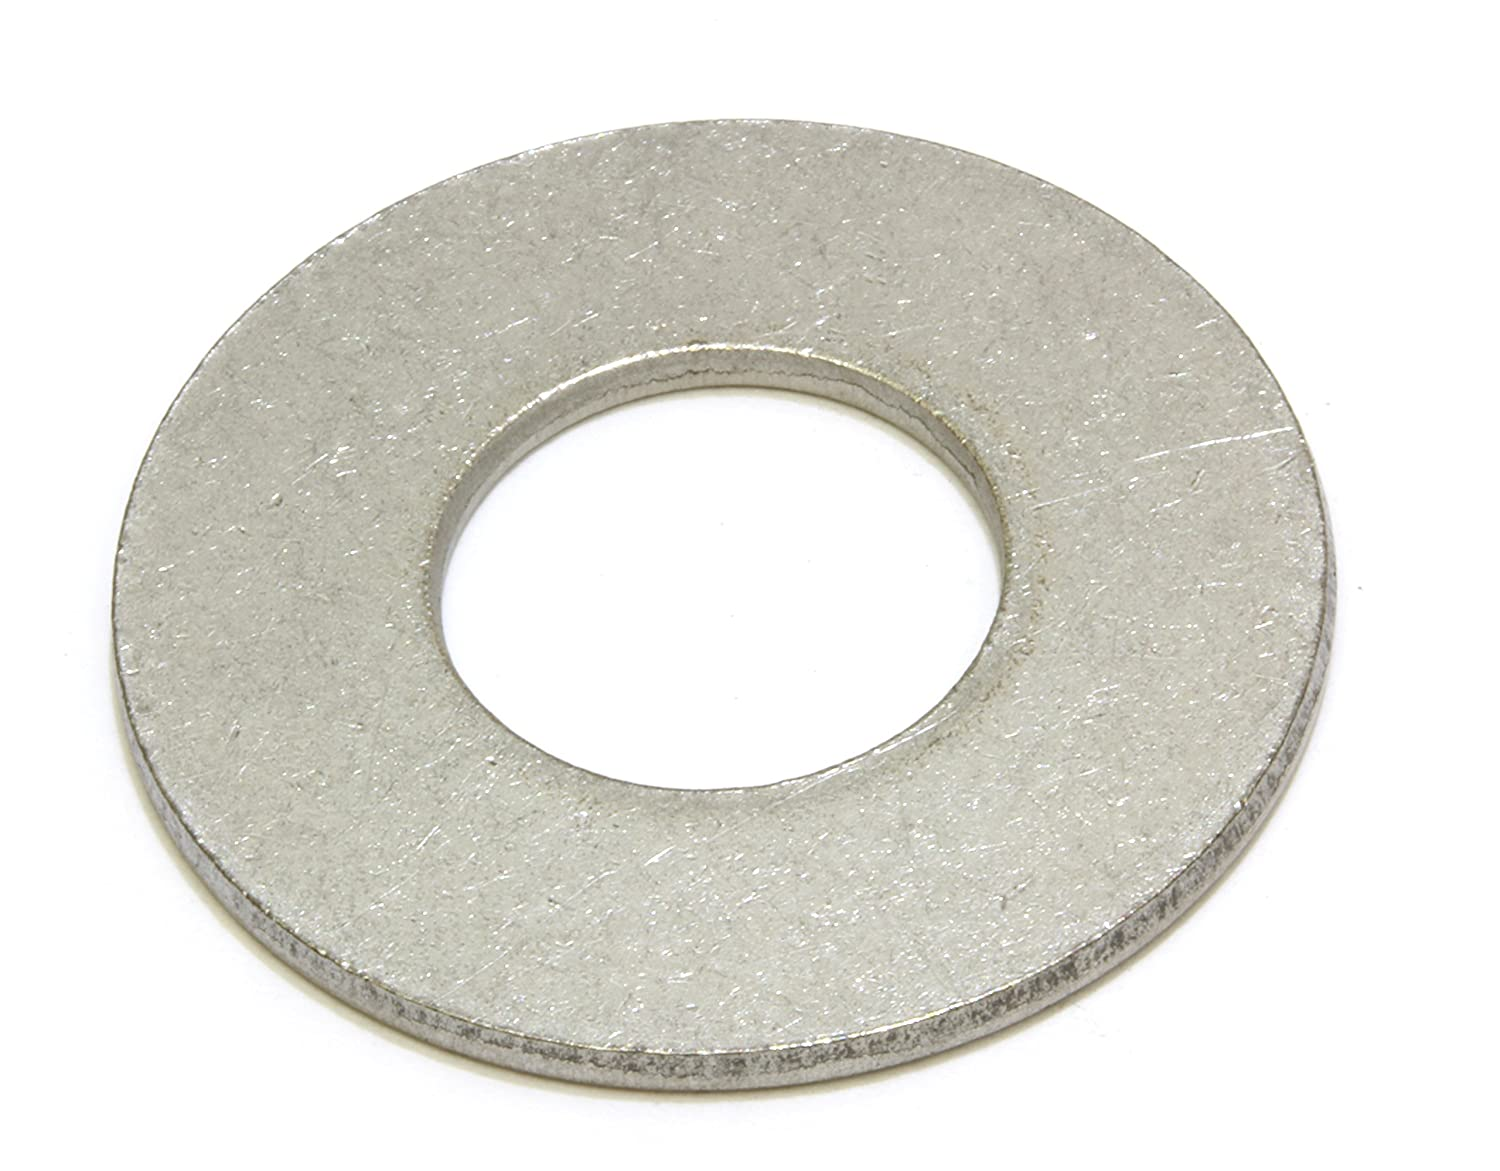 1//2-Inch 50-Pack The Hillman Group 270067 Flat Zinc Washer